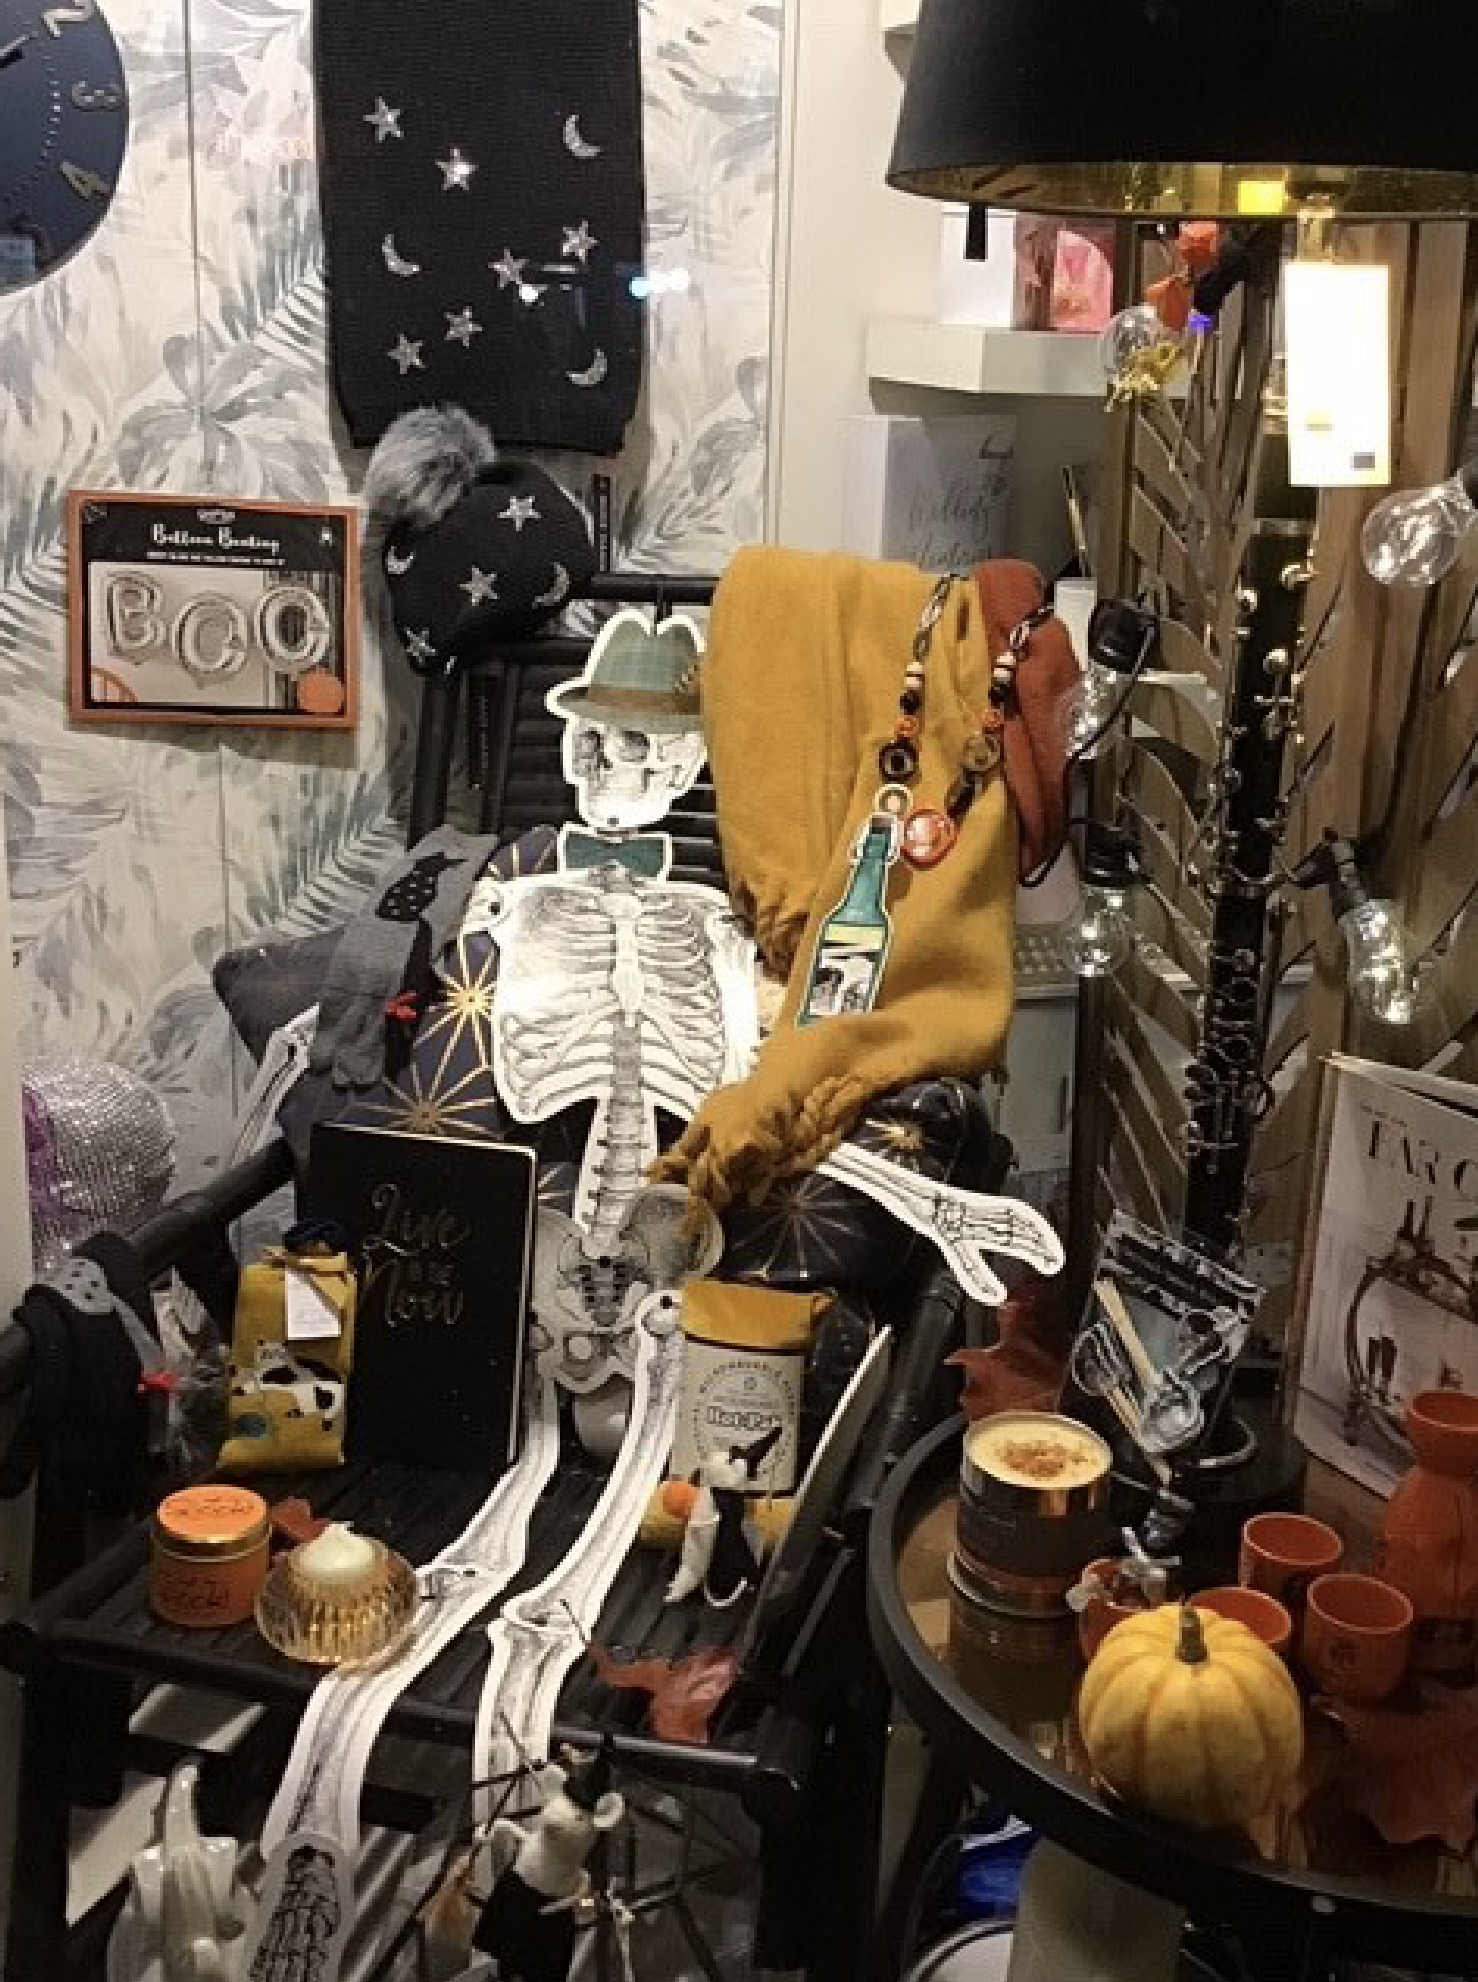 Above: Part of Spirito's Halloween window display.